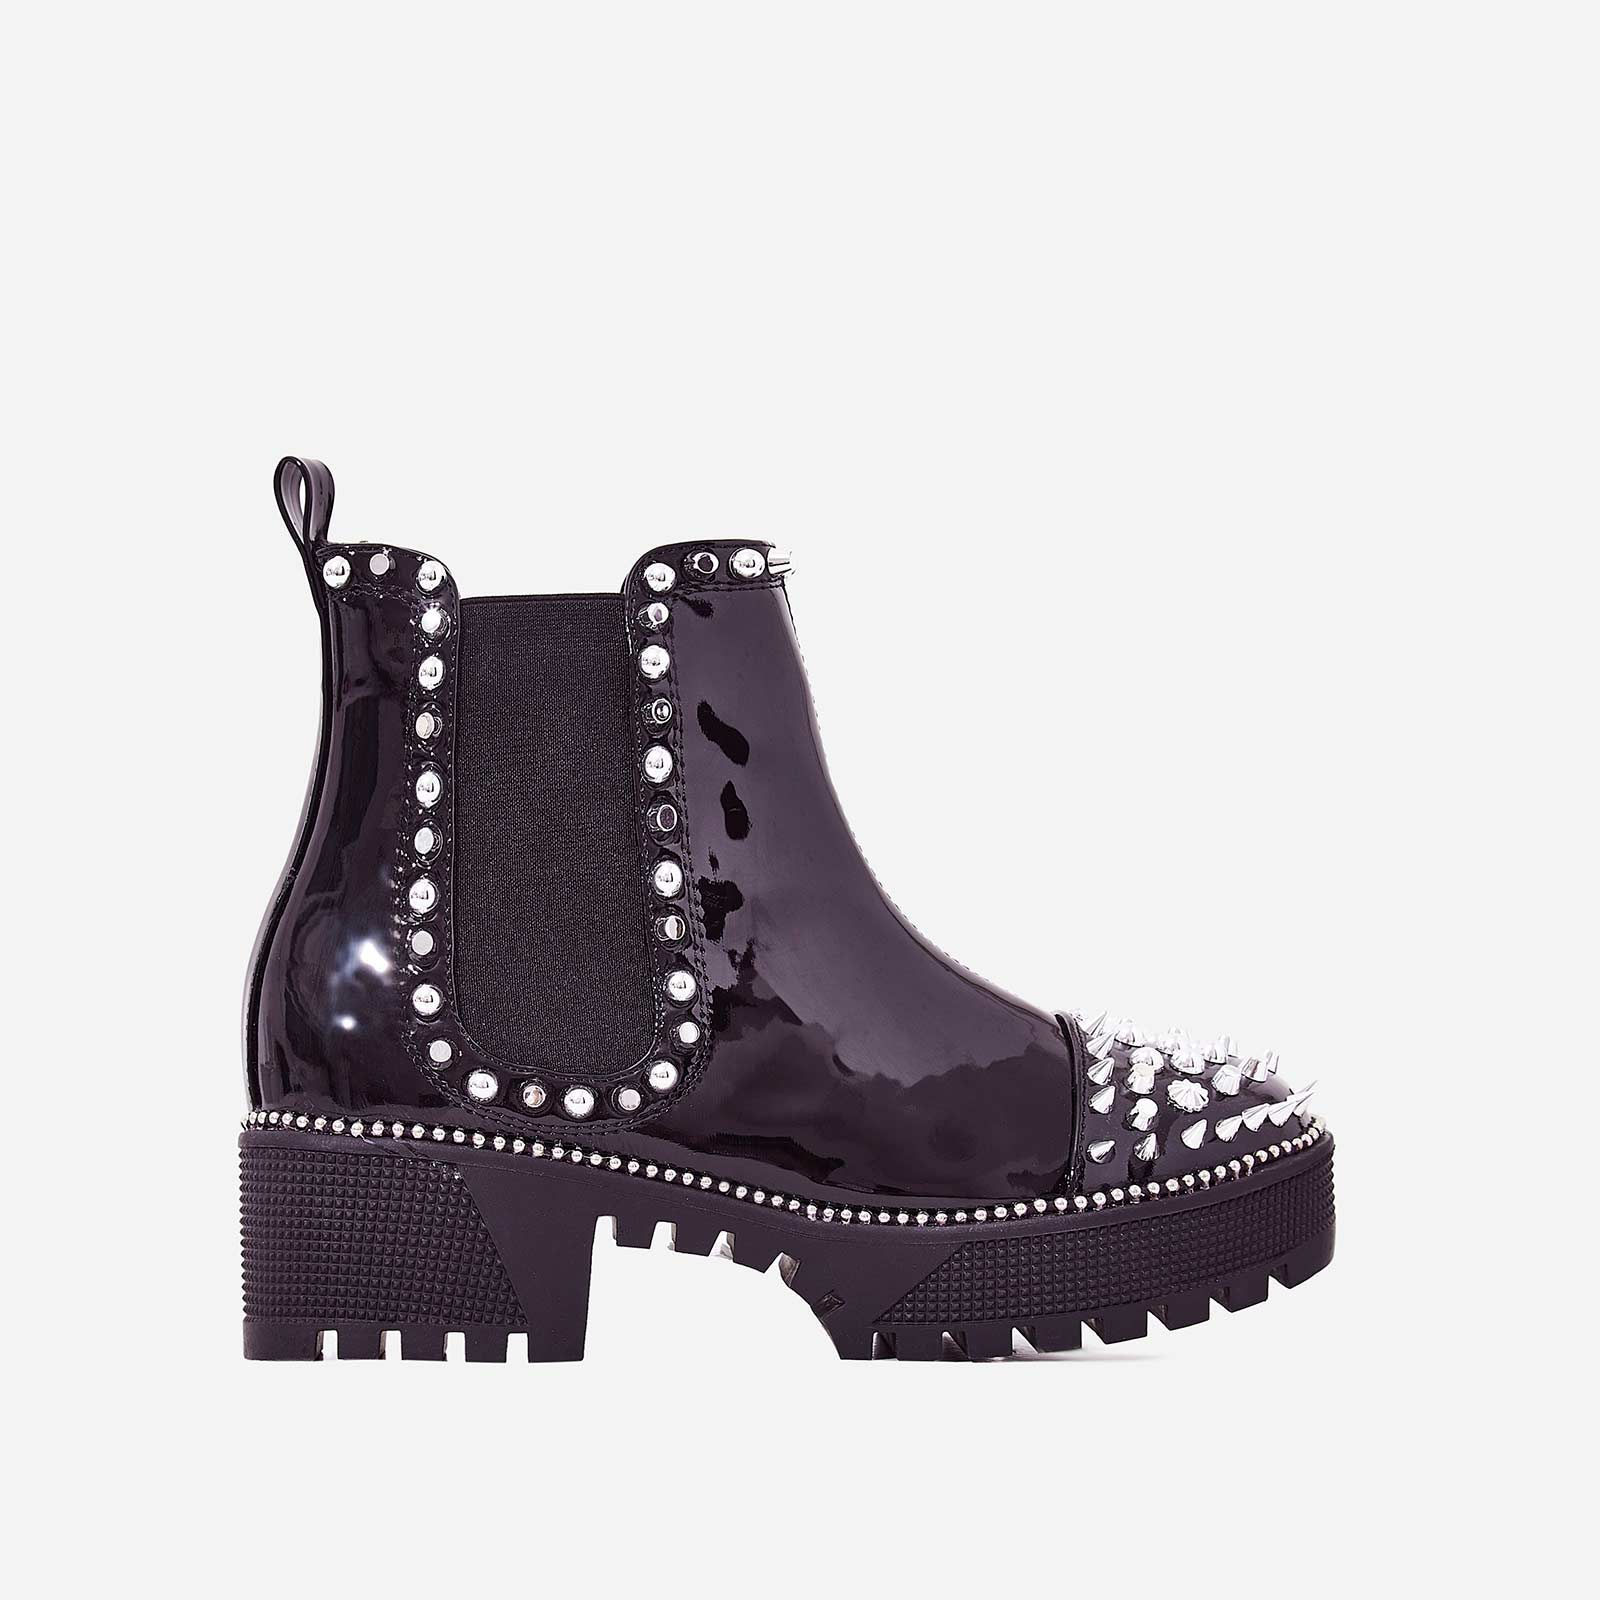 Jack Silver Studded Detail Biker Boot In Black Patent